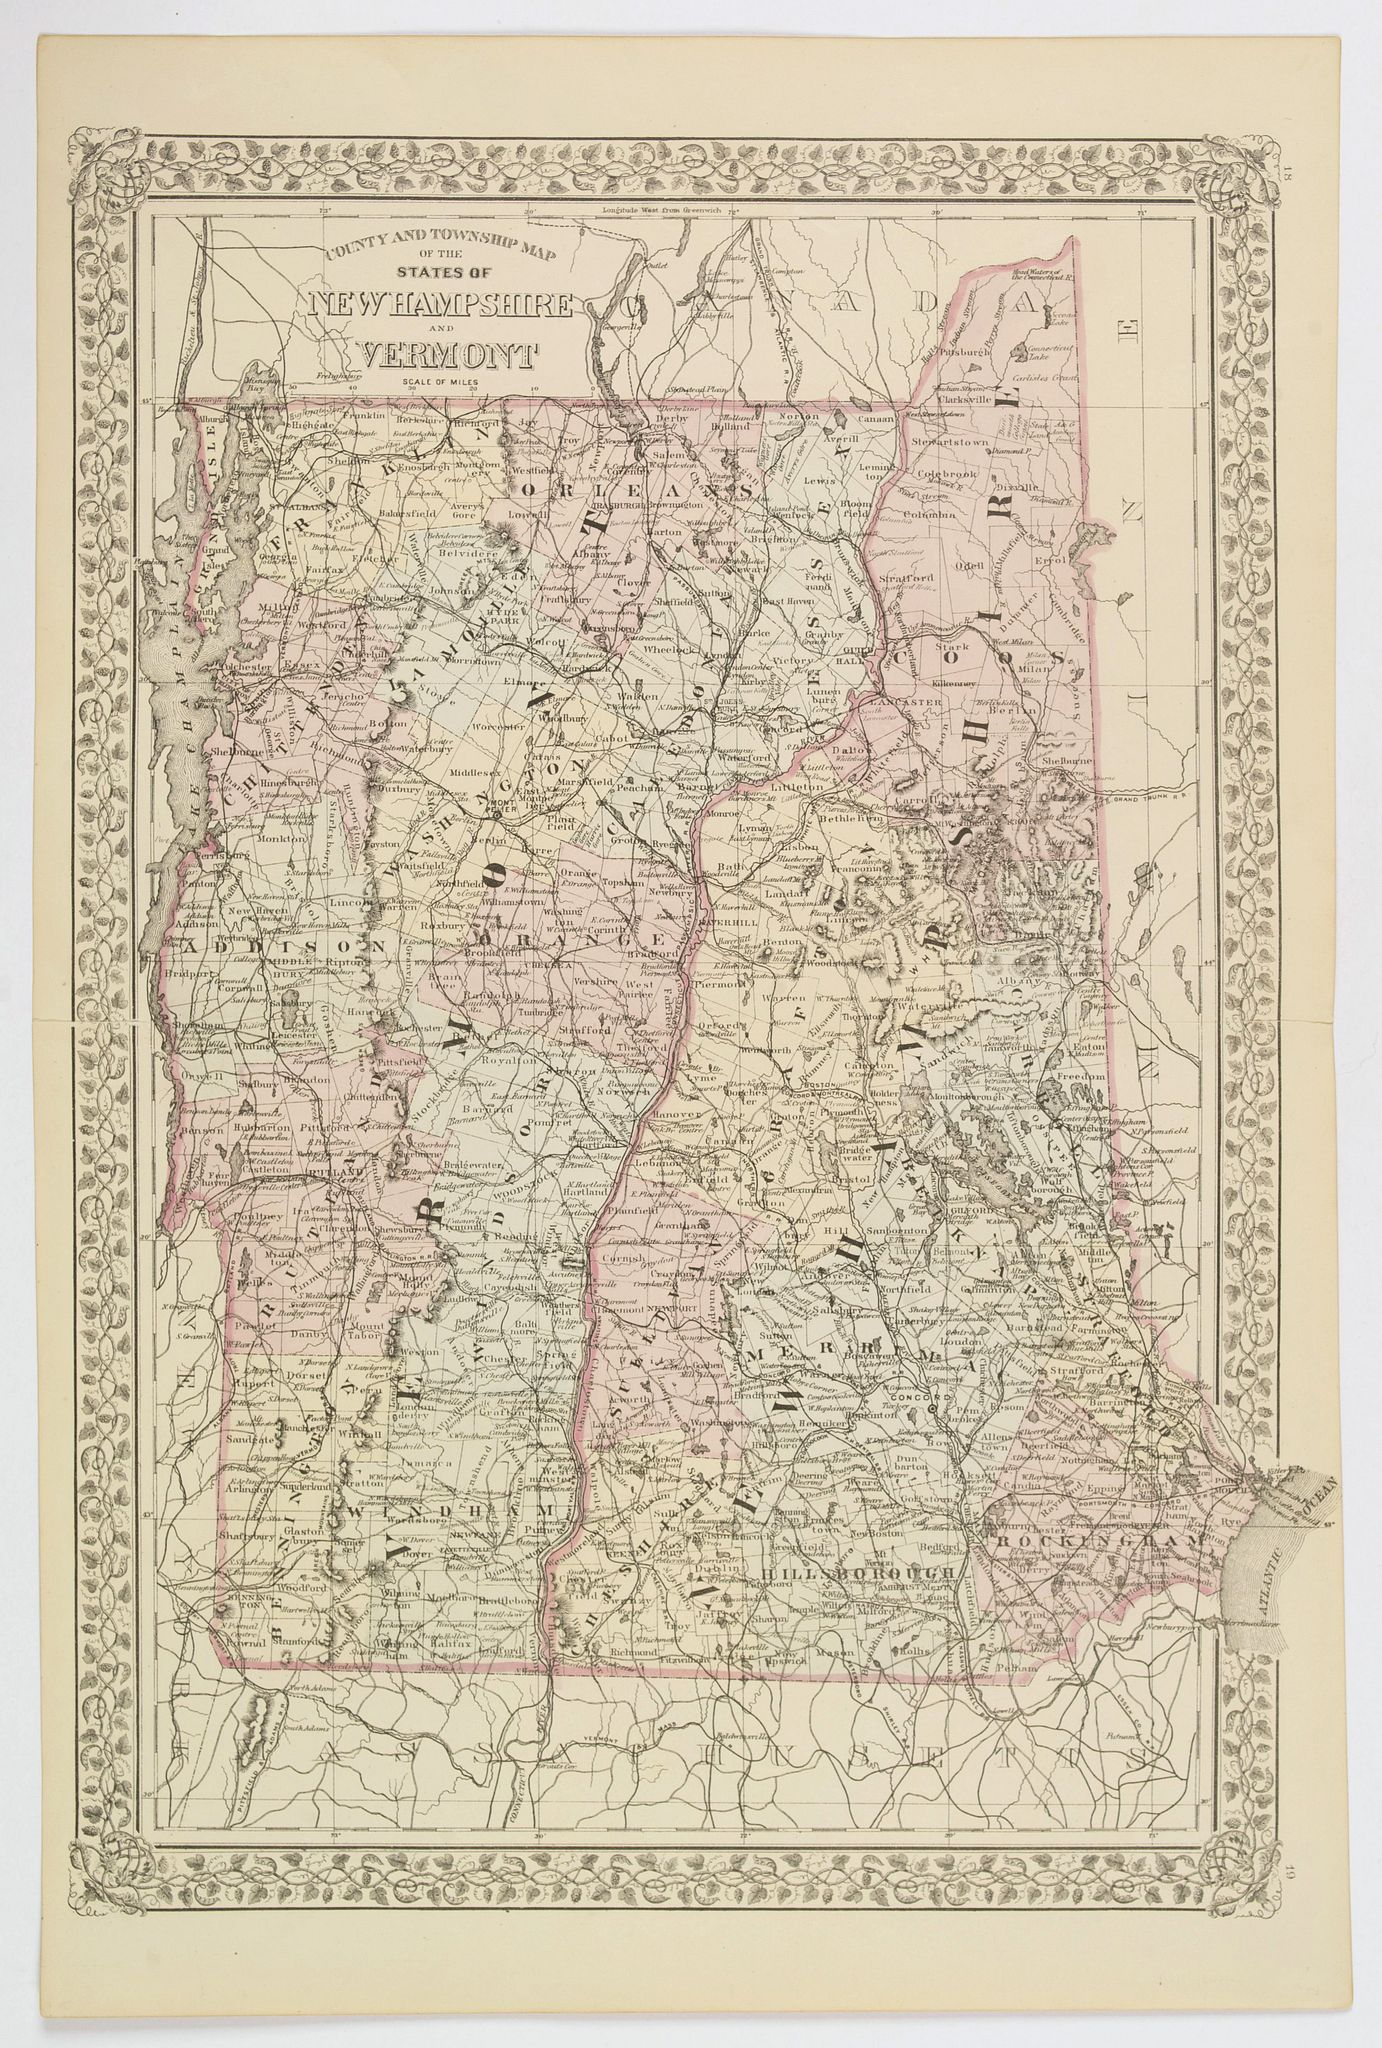 MITCHELL, S.A. - County and Township Map of the States of New Hampshire and Vermont.